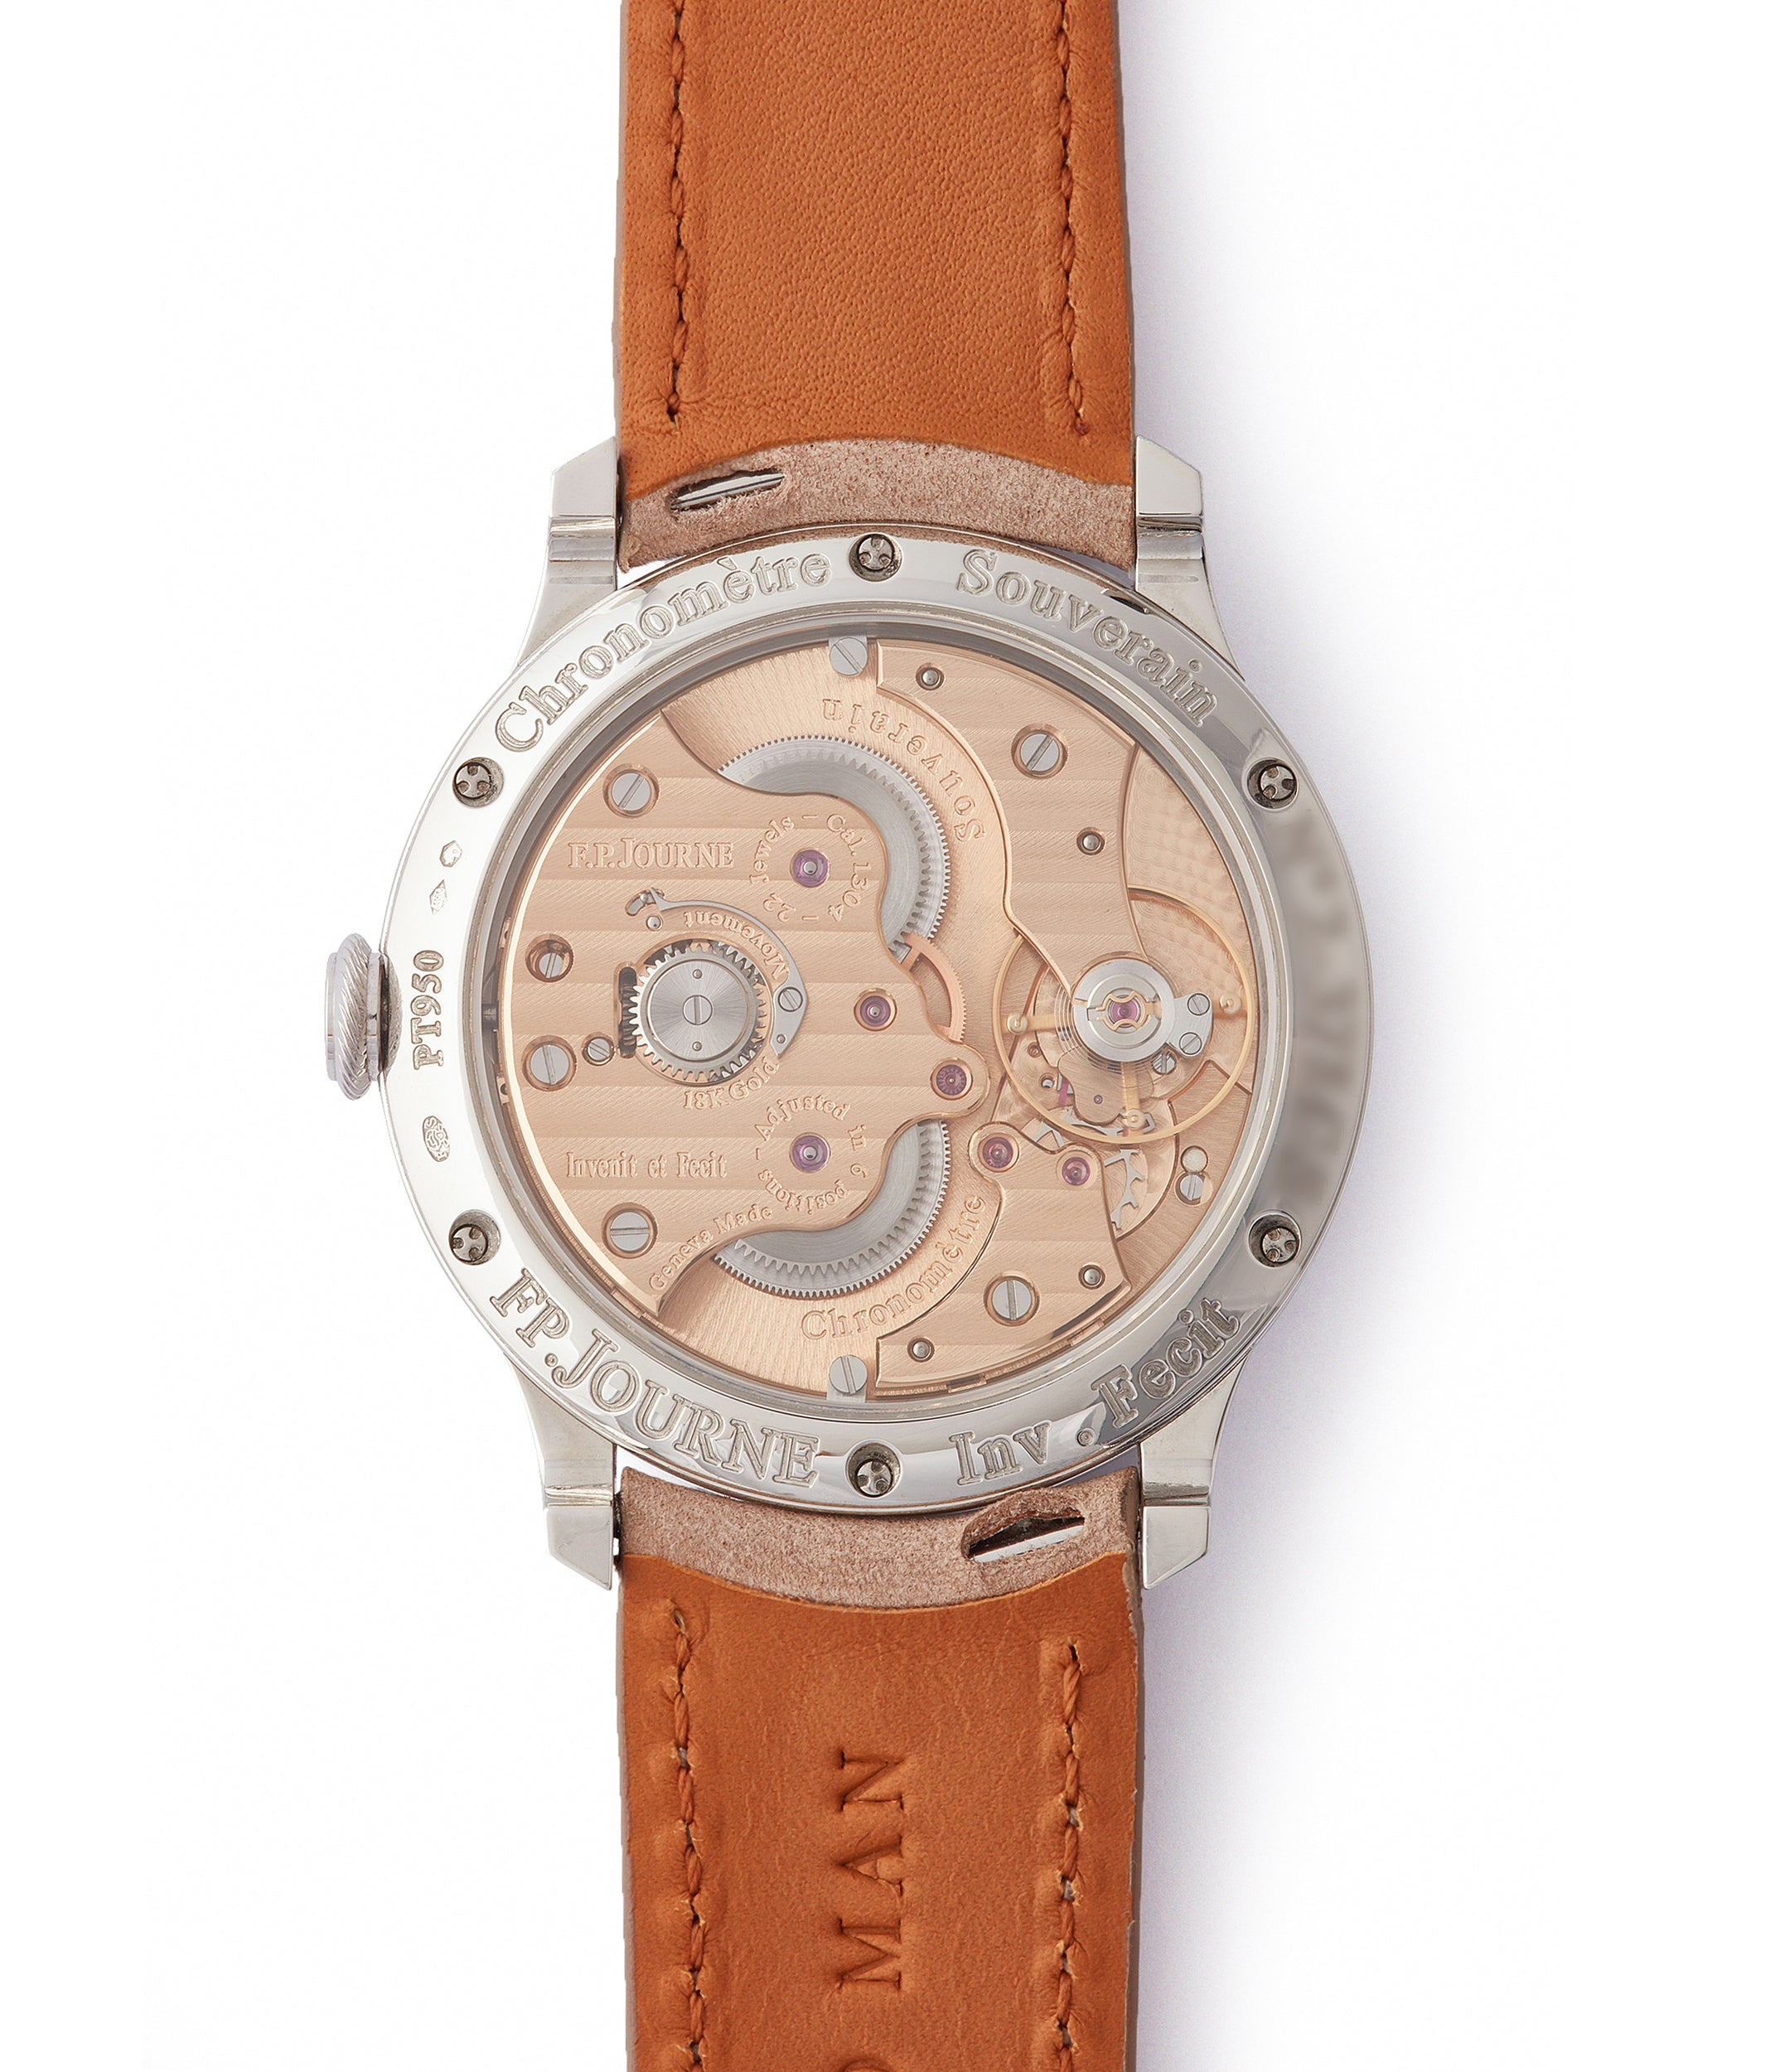 rose gold 1304 F. P. Journe Chronometre Souverain 38mm platinum silver custom dial for sale online at A Collected Man London UK specialist of independent watchmakers